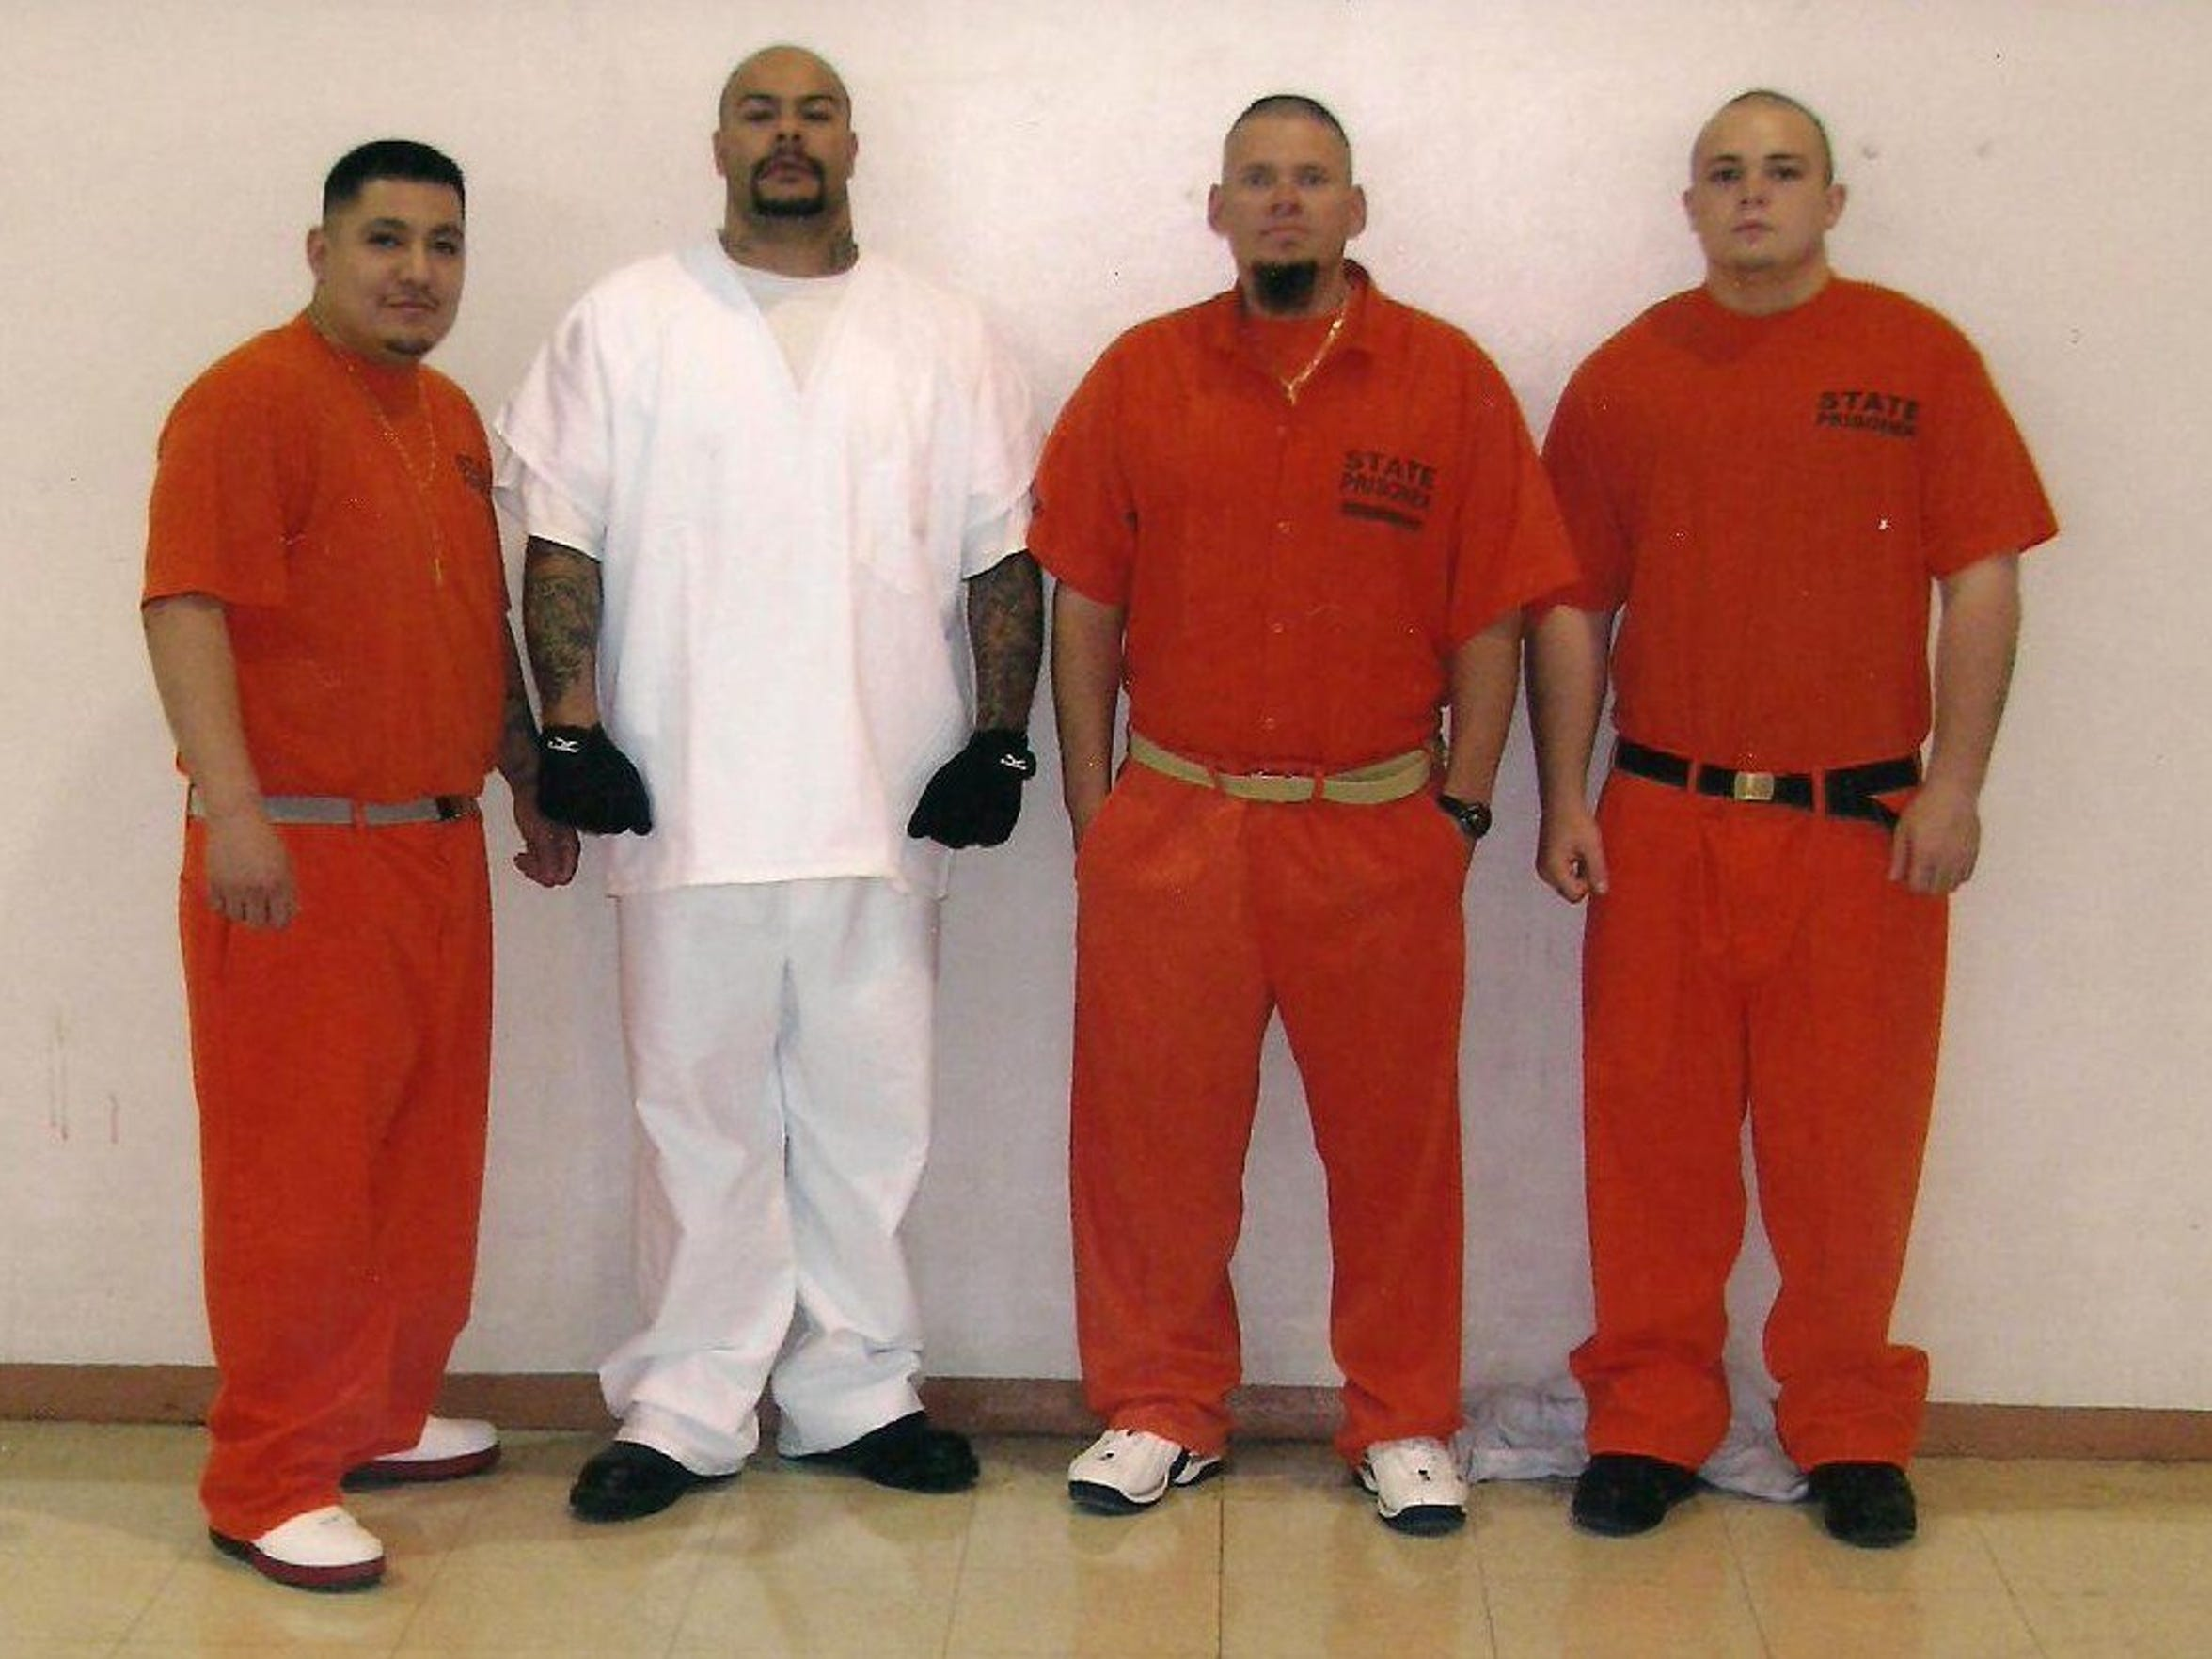 Pastor John Alarid (third from left) served time in the New Mexico Department of Corrections.